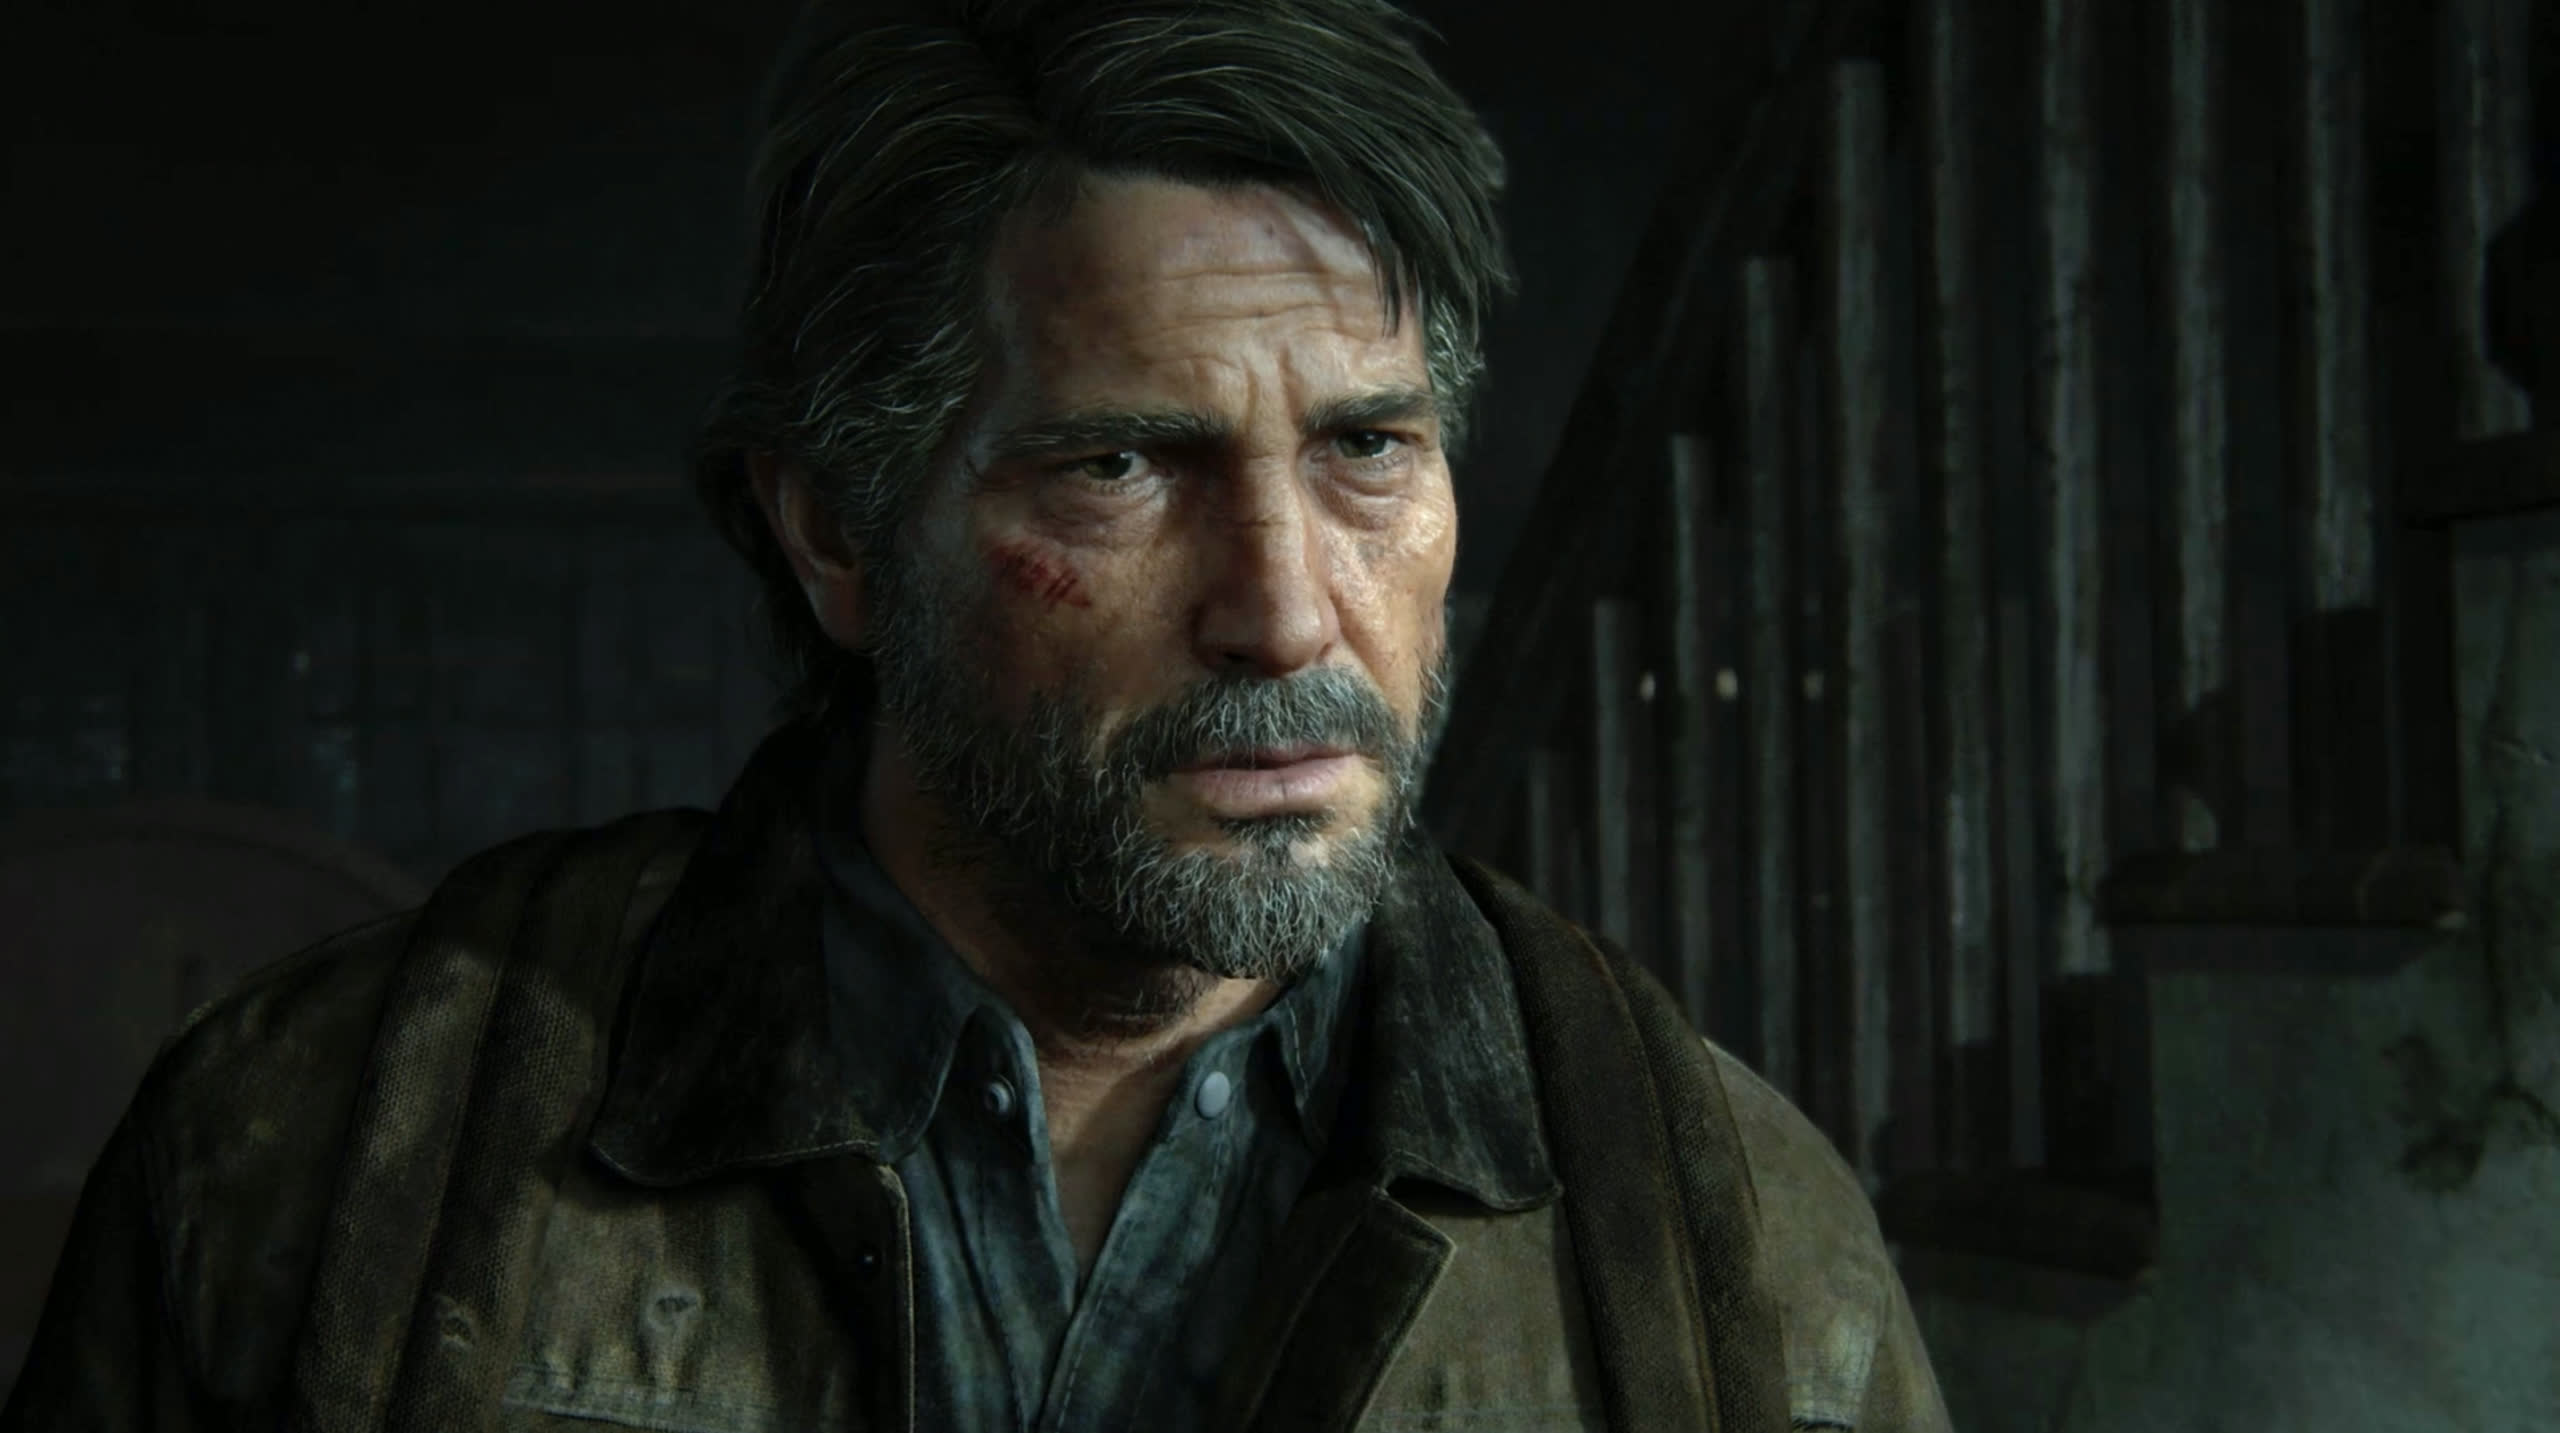 Naughty Dog is remaking The Last of Us again, and not everybody is happy about it